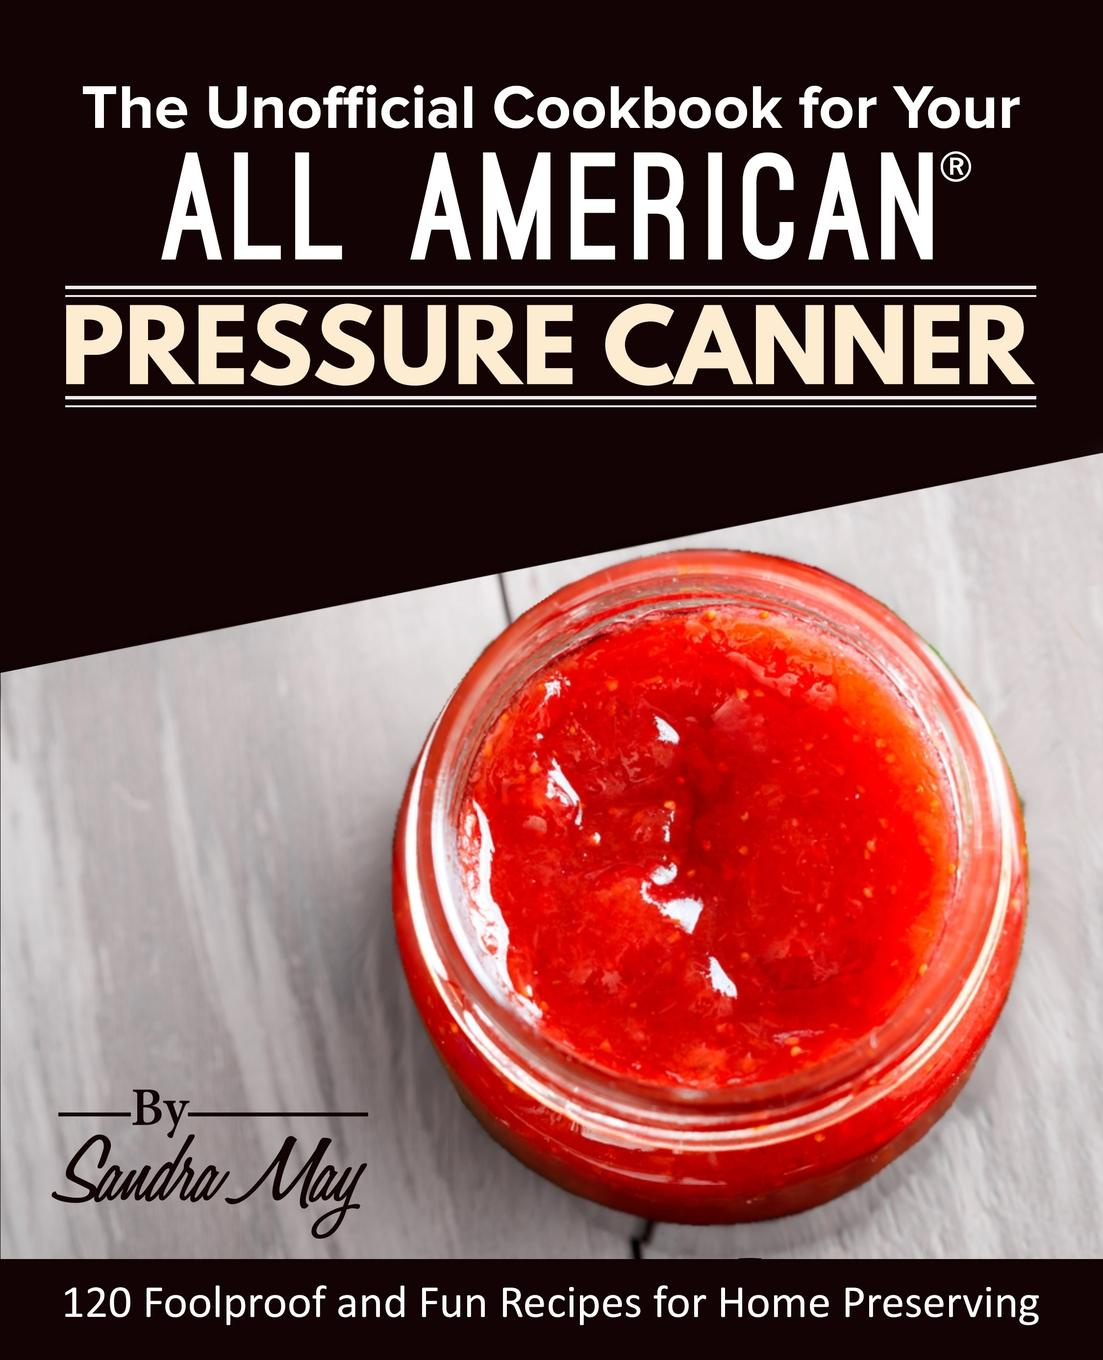 Sandra May The Unofficial Cookbook for Your All American. Pressure Canner. 120 Foolproof and Fun Recipes for Home Preserving 2oz stainless steel meat marinade injector flavor bbq turkey pork syinge with liquid minced marinade needles